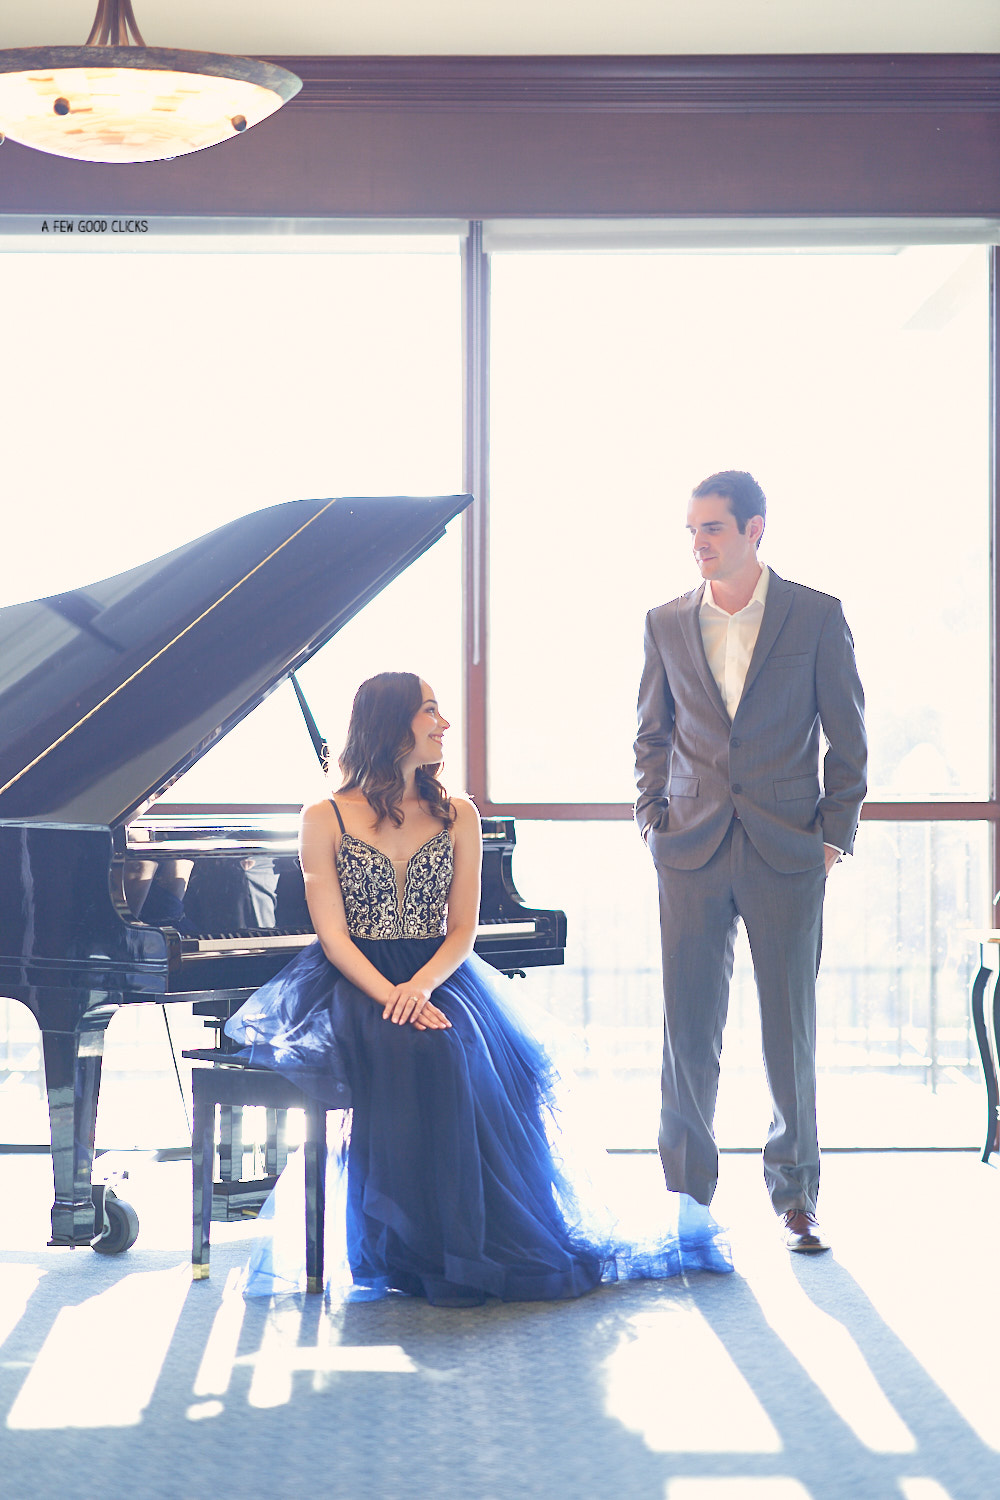 bay-area-engagement-photography-ideas-with-piano-by-afewgoodclicks